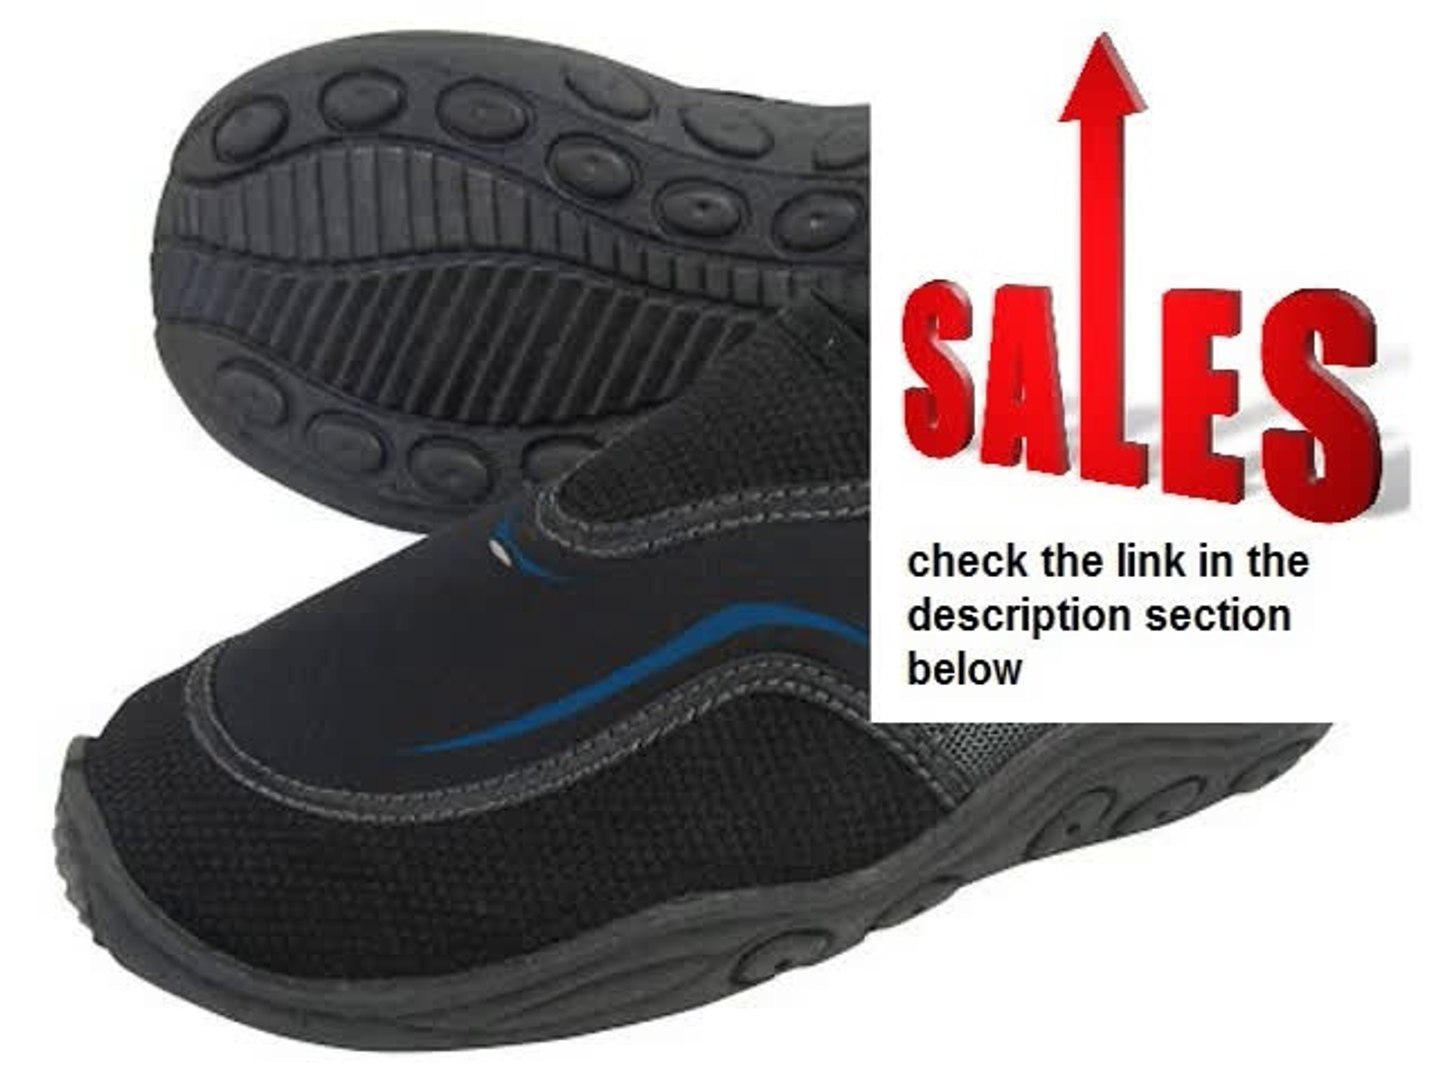 Clearance Sales! Aqua Lung Sport Kids Seaboard Watershoe - Great for all Watersports Review